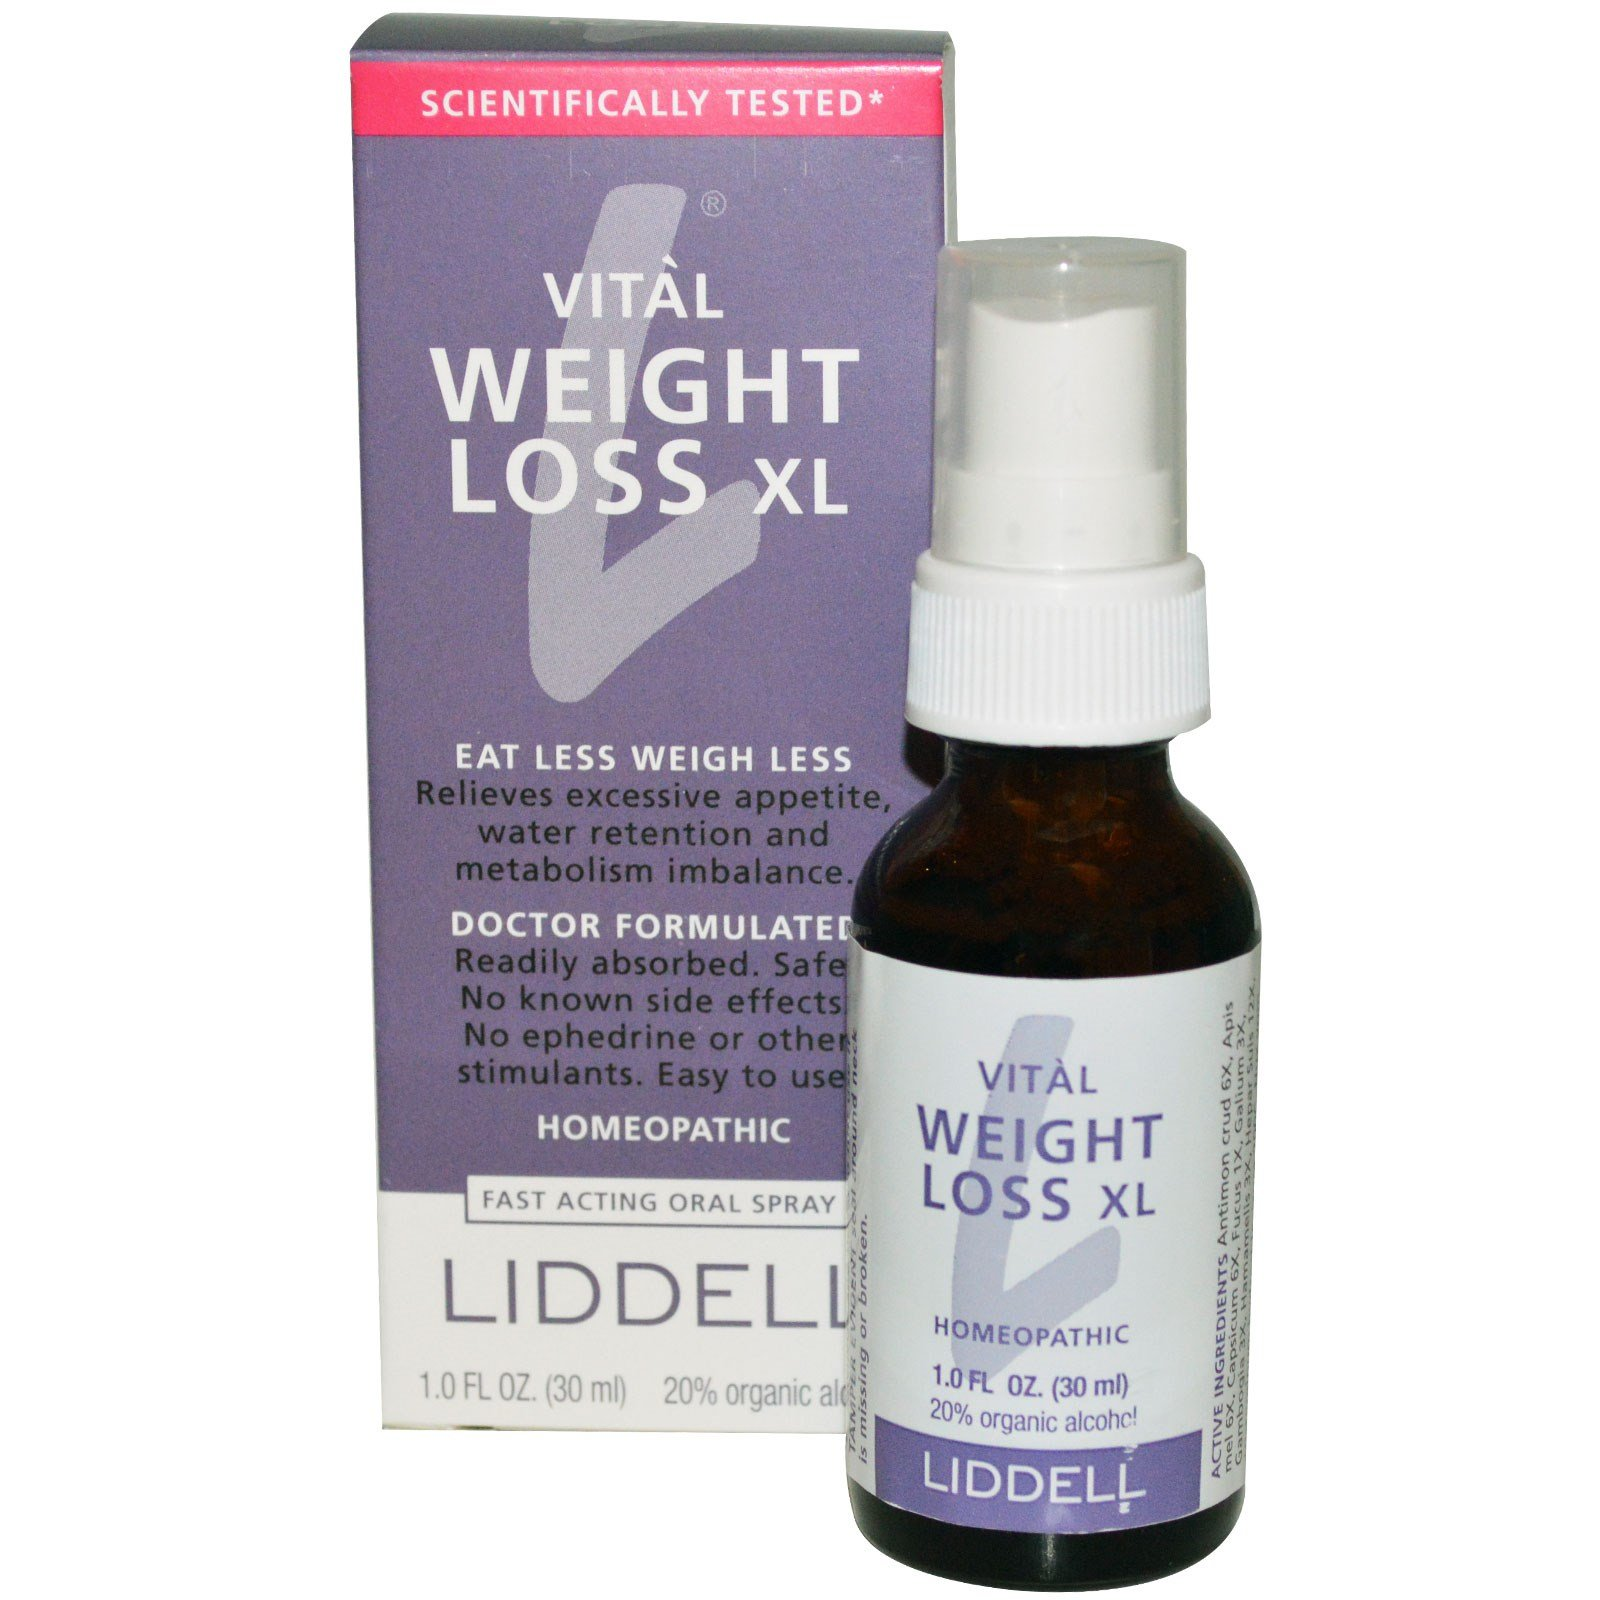 Liddell, Vital Weight Loss XL, Fast Acting Oral Spray, 1.0 fl oz (30 ml) - 3PC